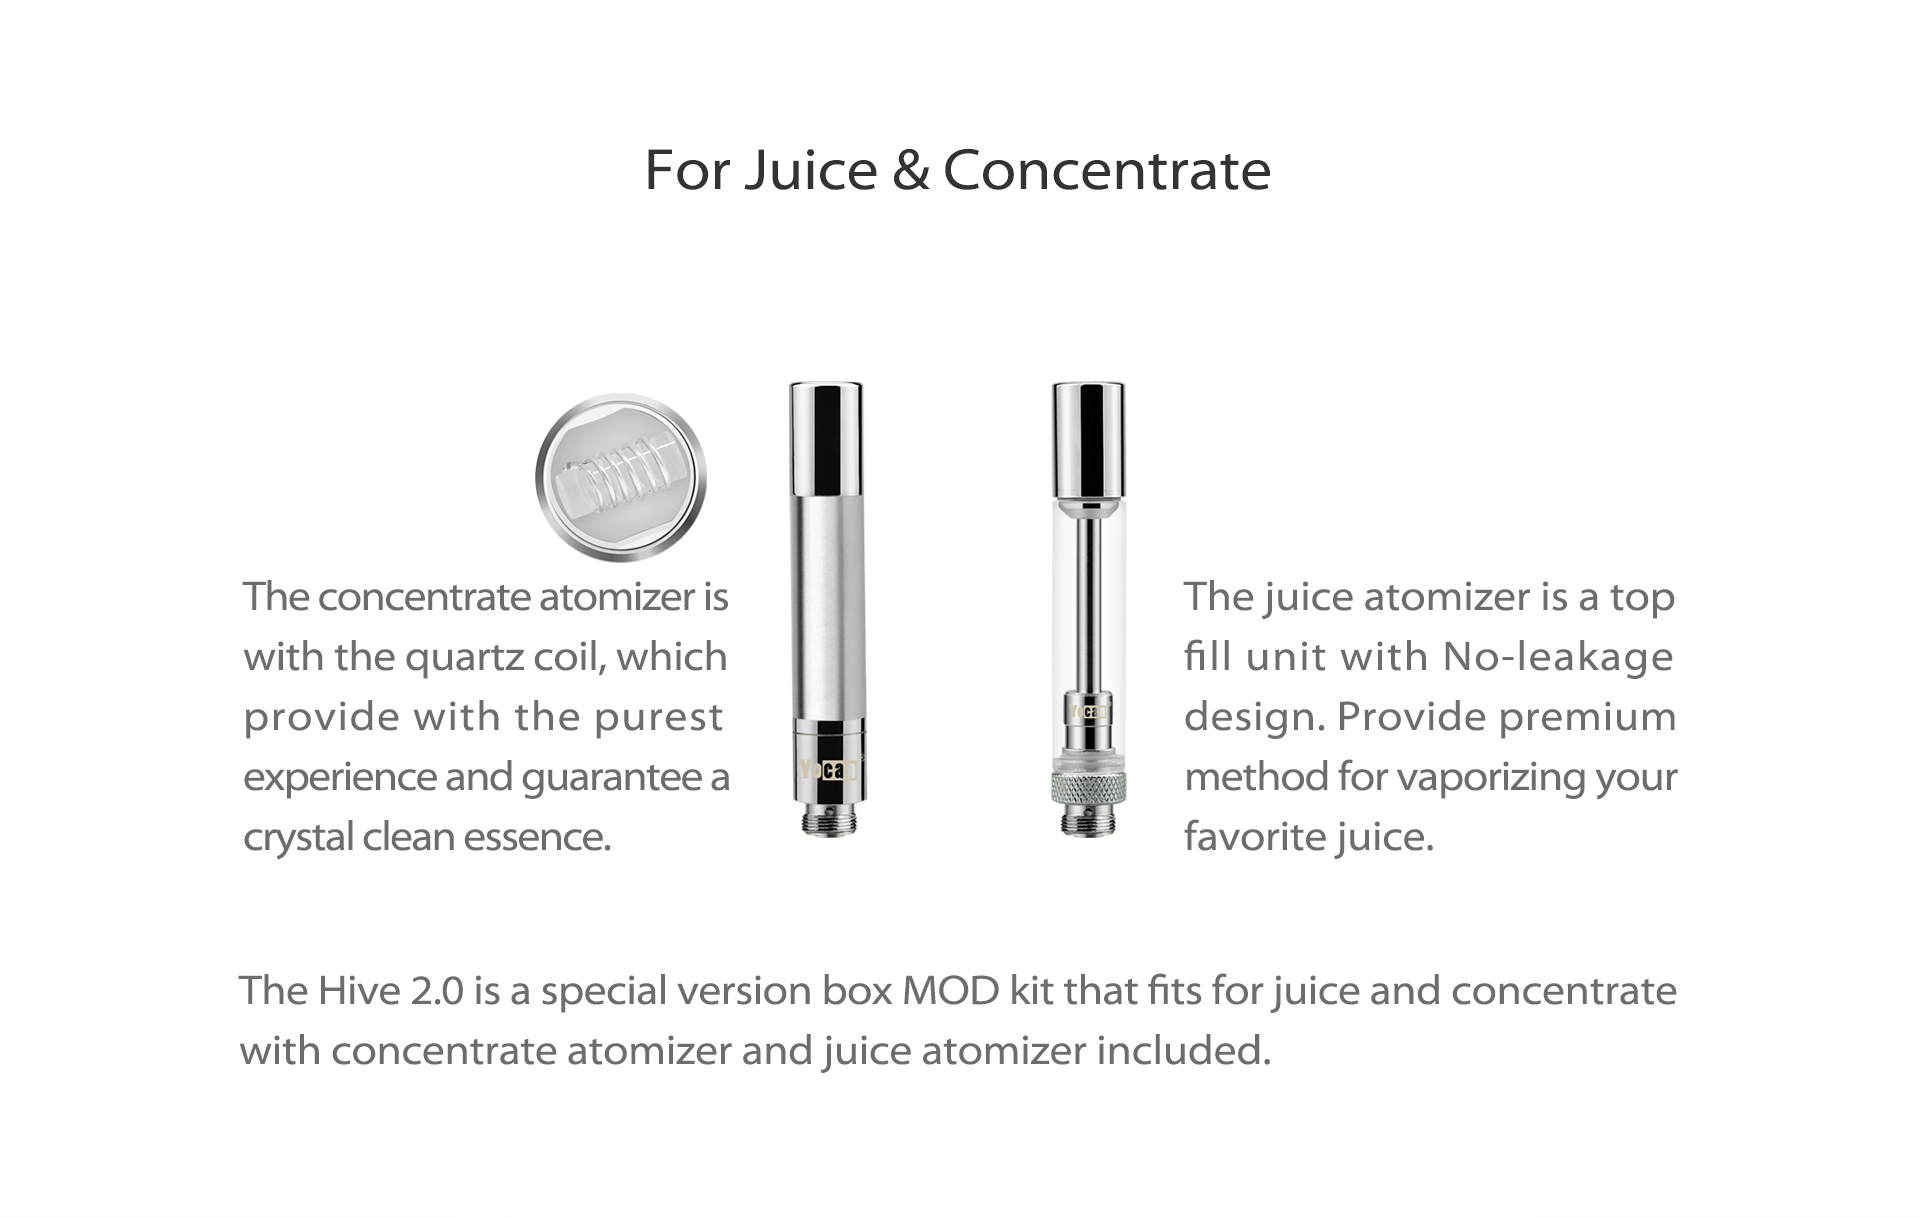 Yocan Hive 2.0 with a no-leakage design and made to work with e-juice's and concentrates.